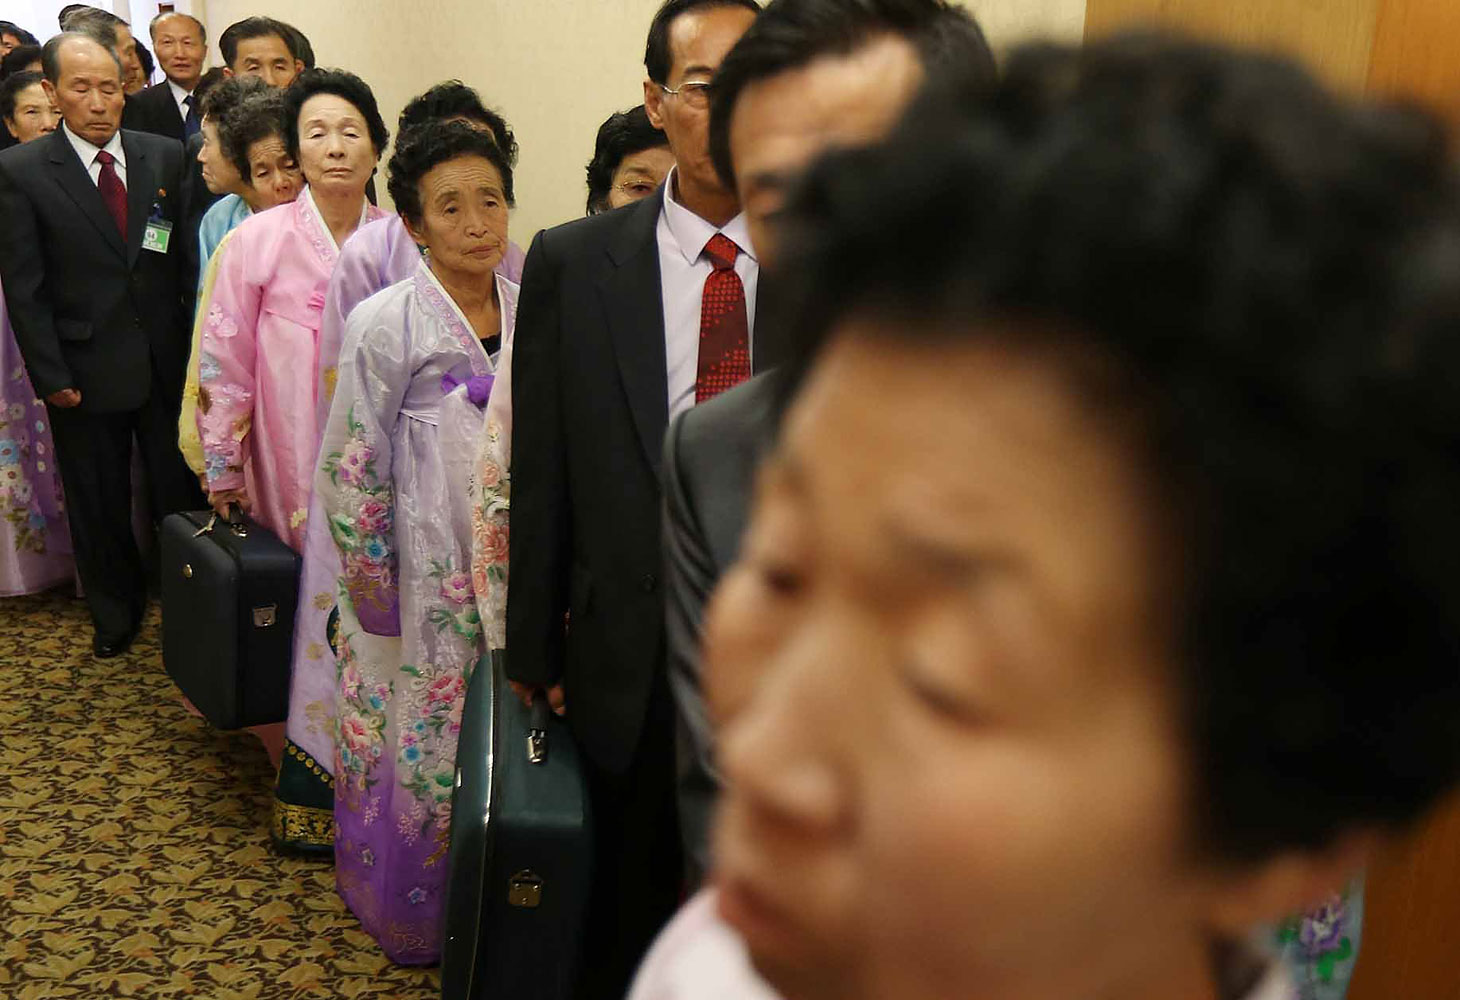 North Koreans arrive for private meetings with their South Korean relatives on the second day of family reunions between the divided countries, at a hotel in the North Korea resort of Mount Kumgang on Feb. 21, 2014.